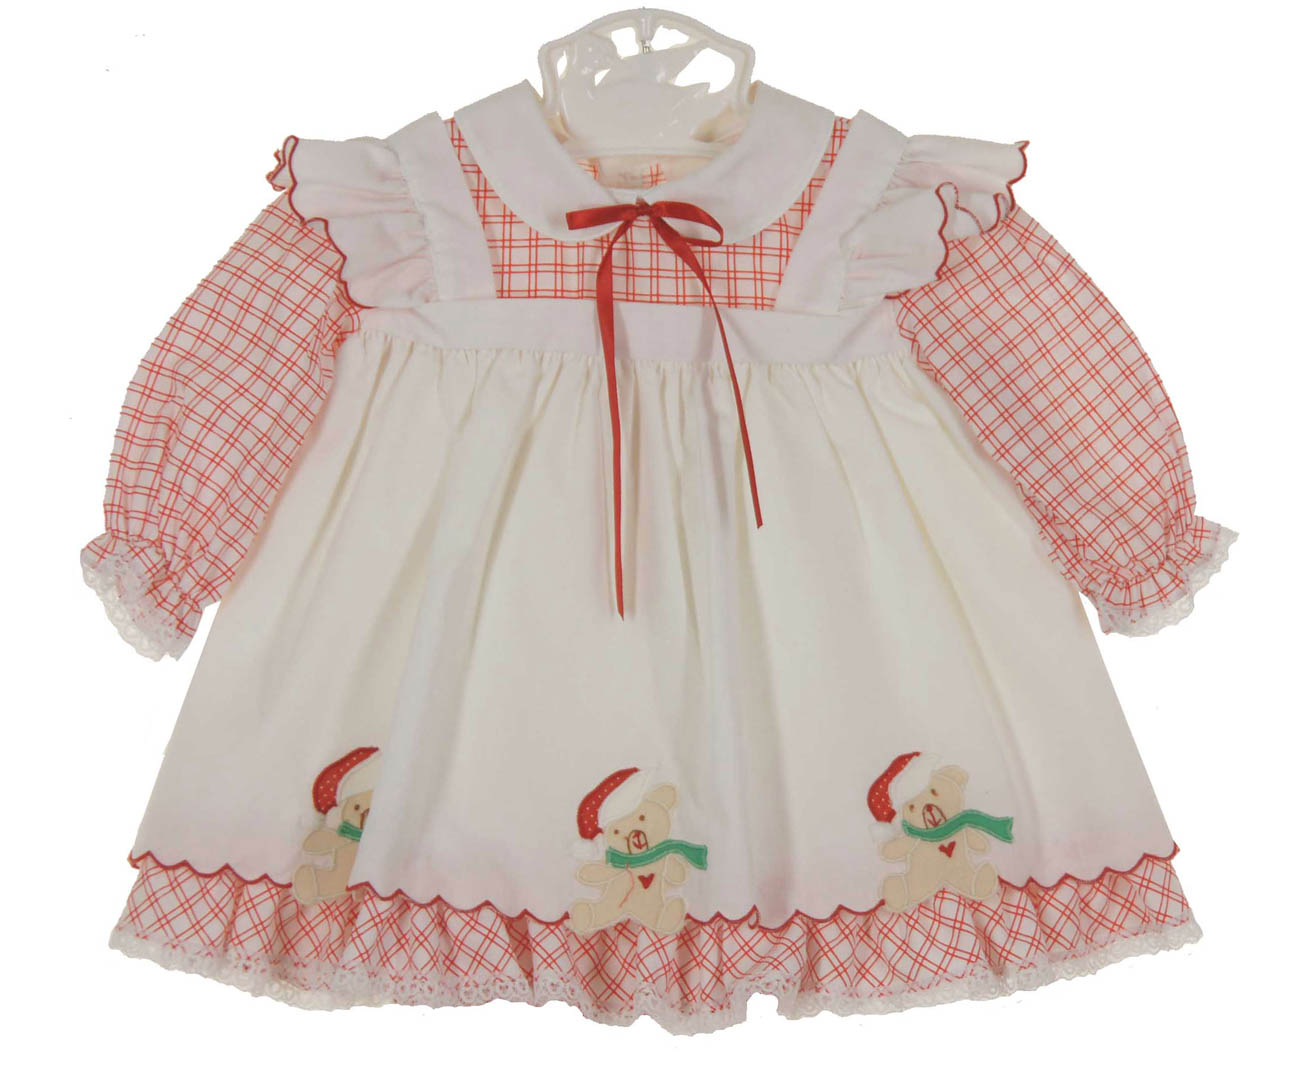 Vintage little girls white dress suggest you